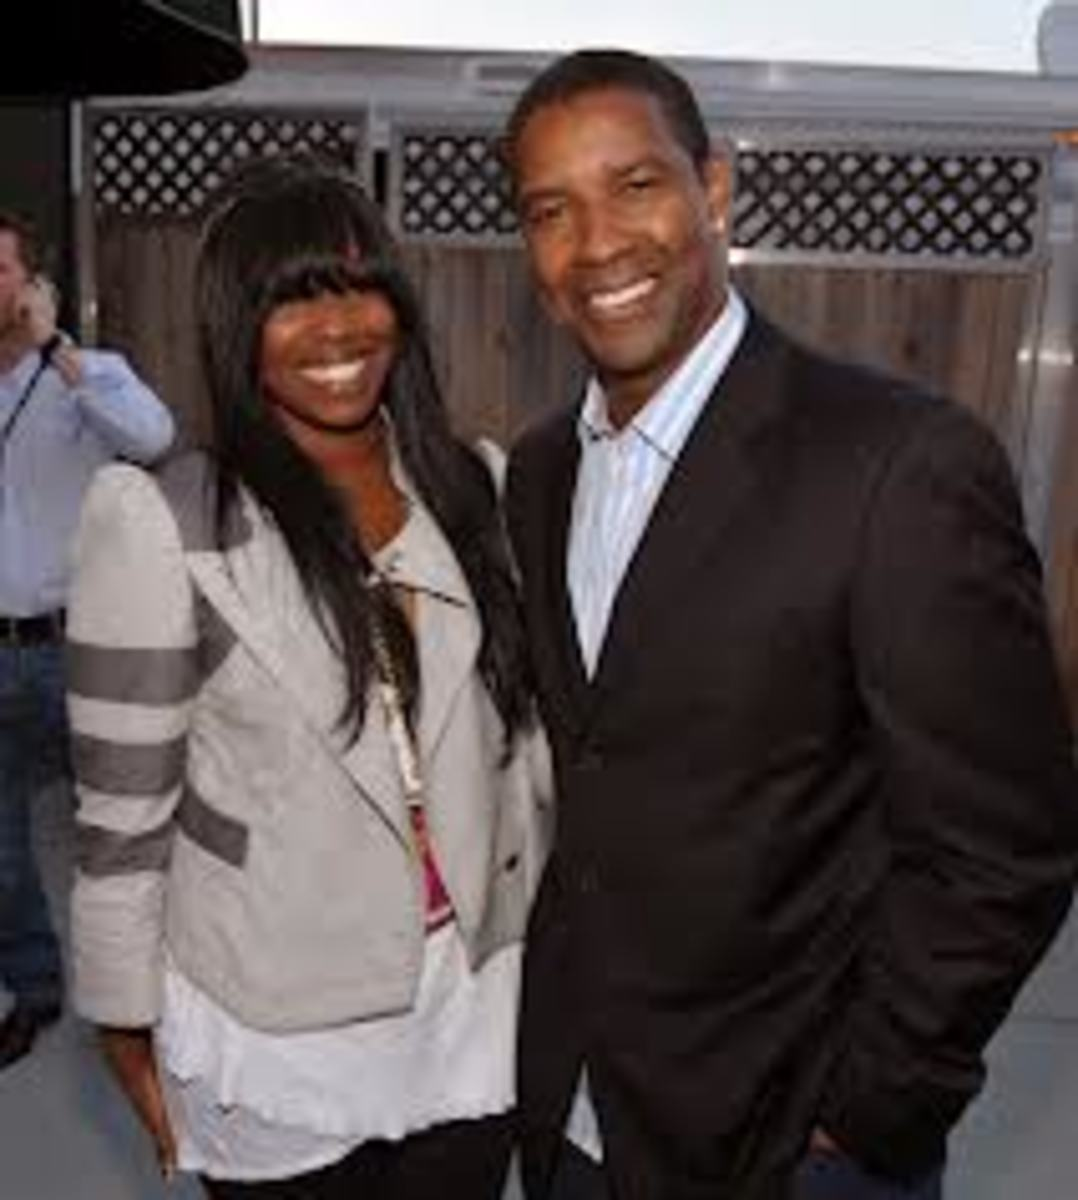 Denzel Washington told his daughter, Olivia, that her skin color will make it more difficult for her to succeed in the entertainment business.